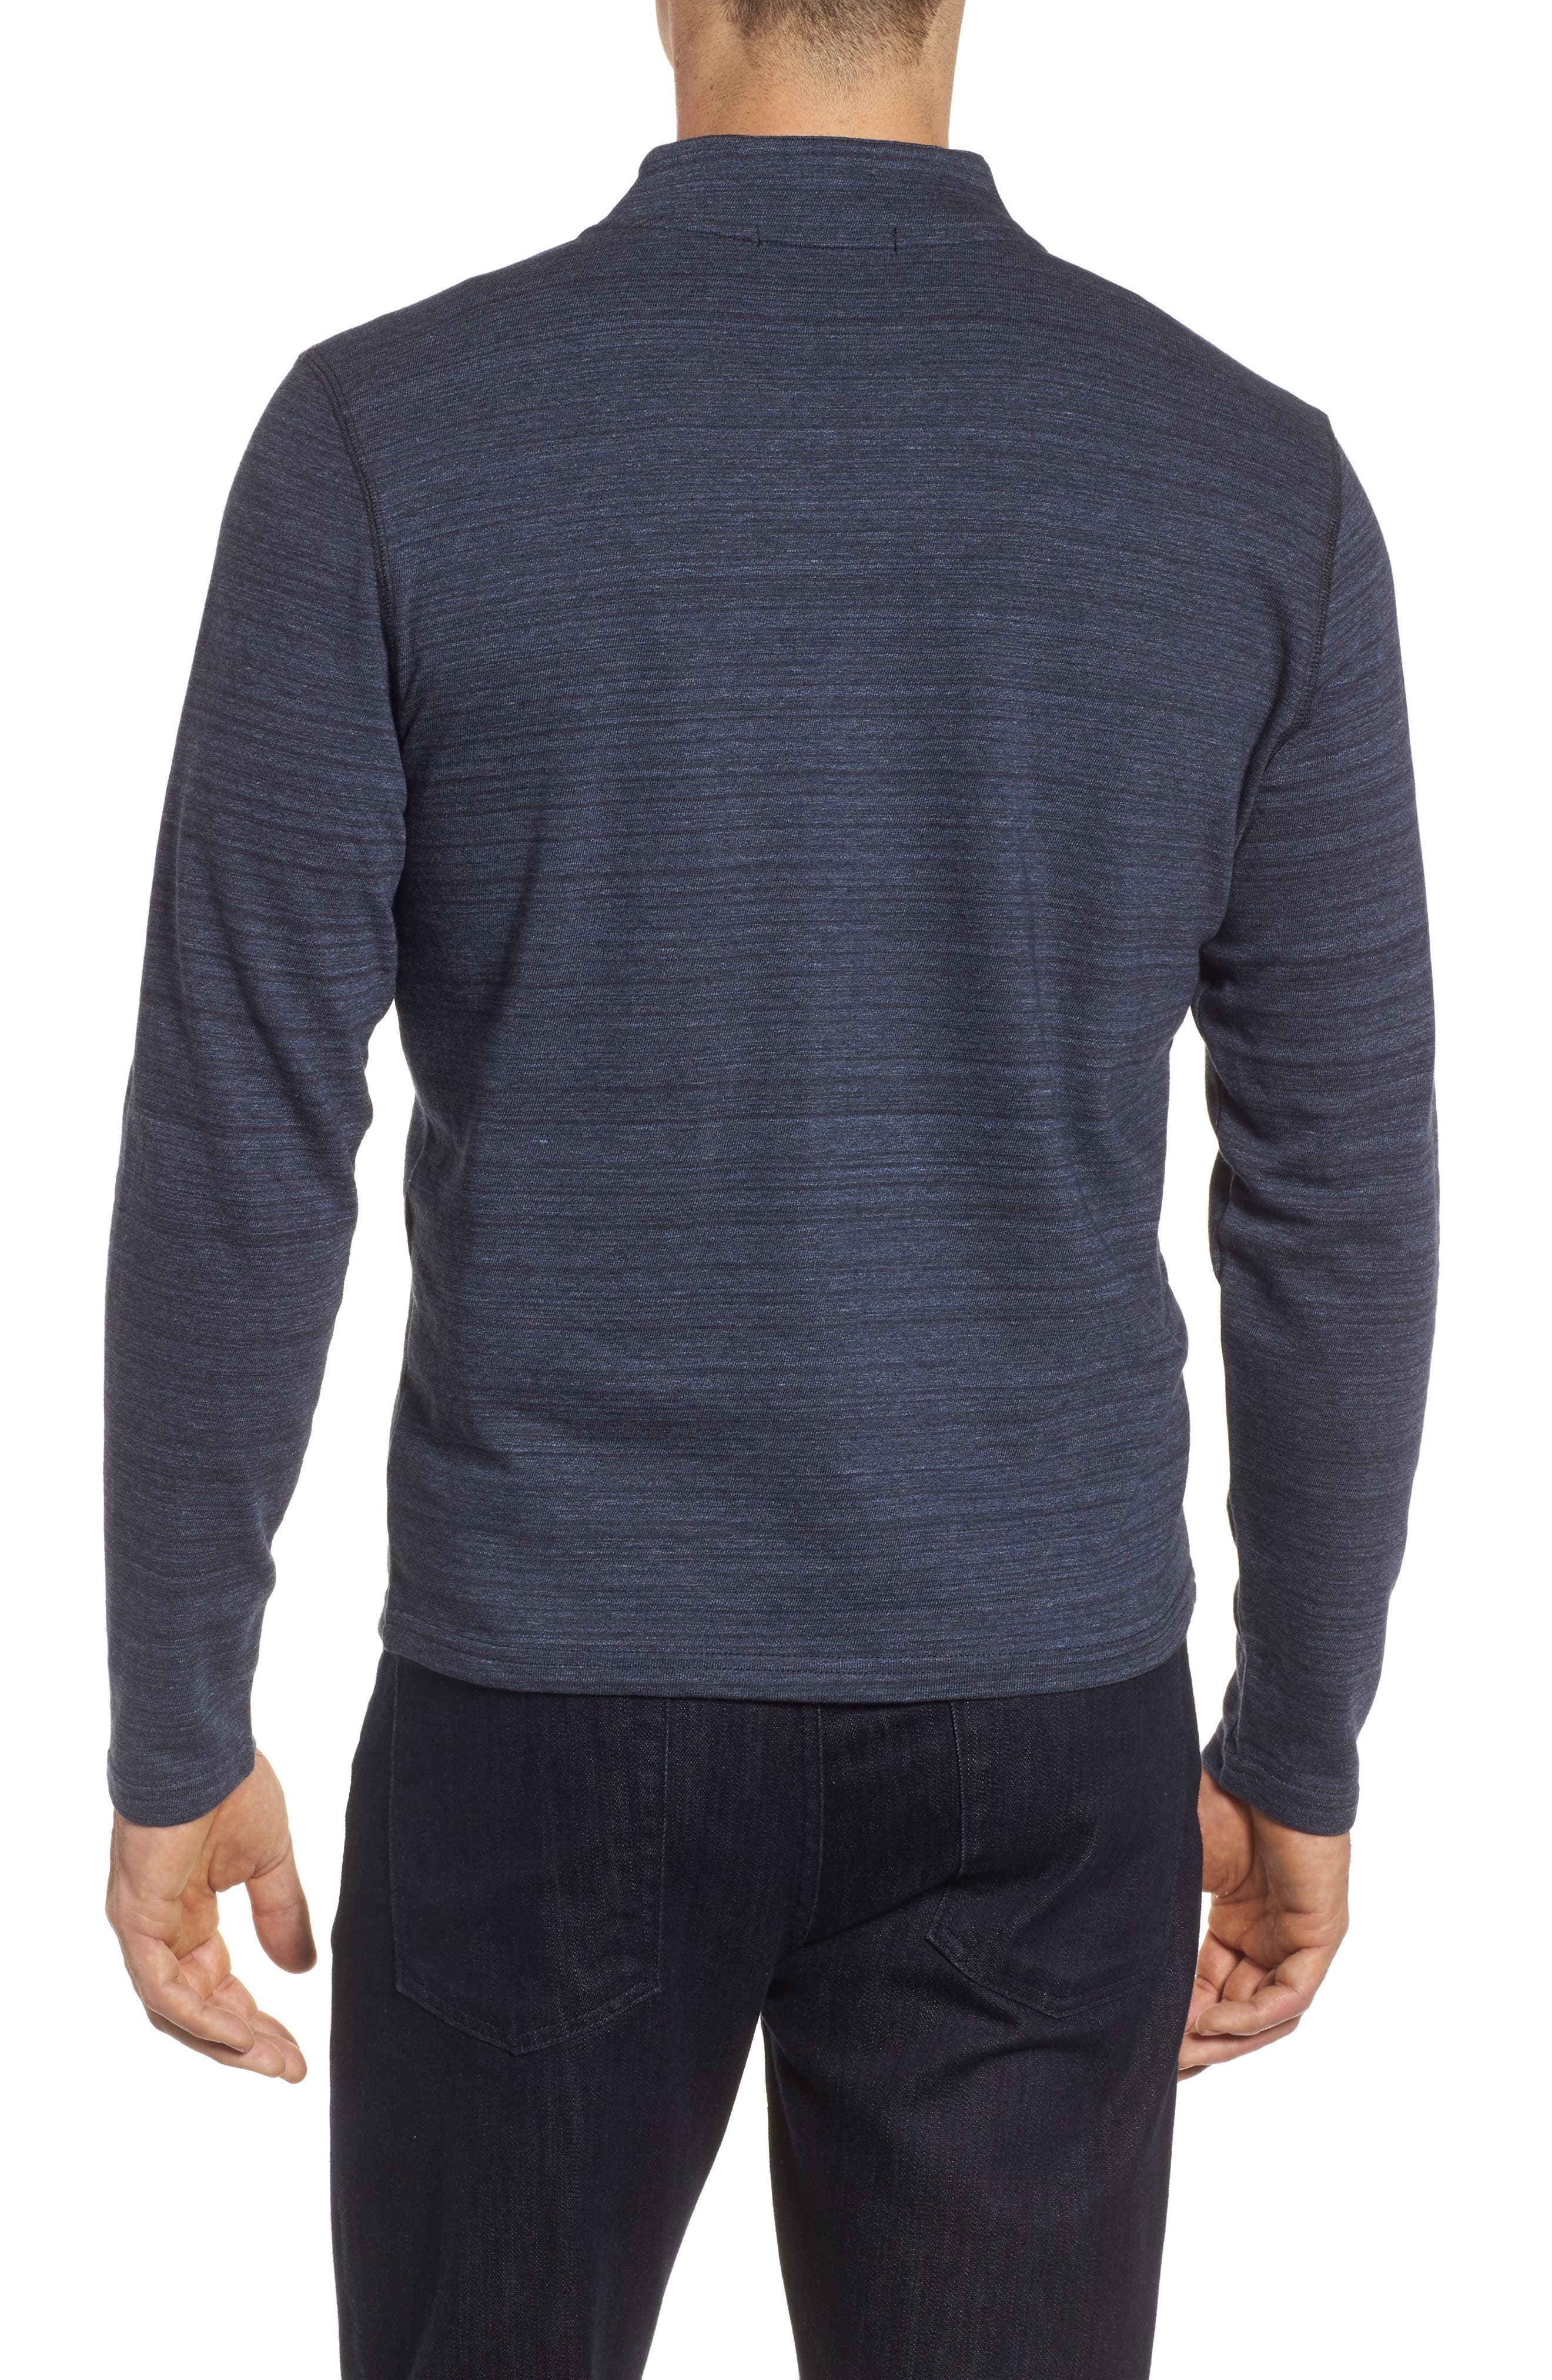 Marcel Quarter Zip Pullover,                             Alternate thumbnail 2, color,                             525